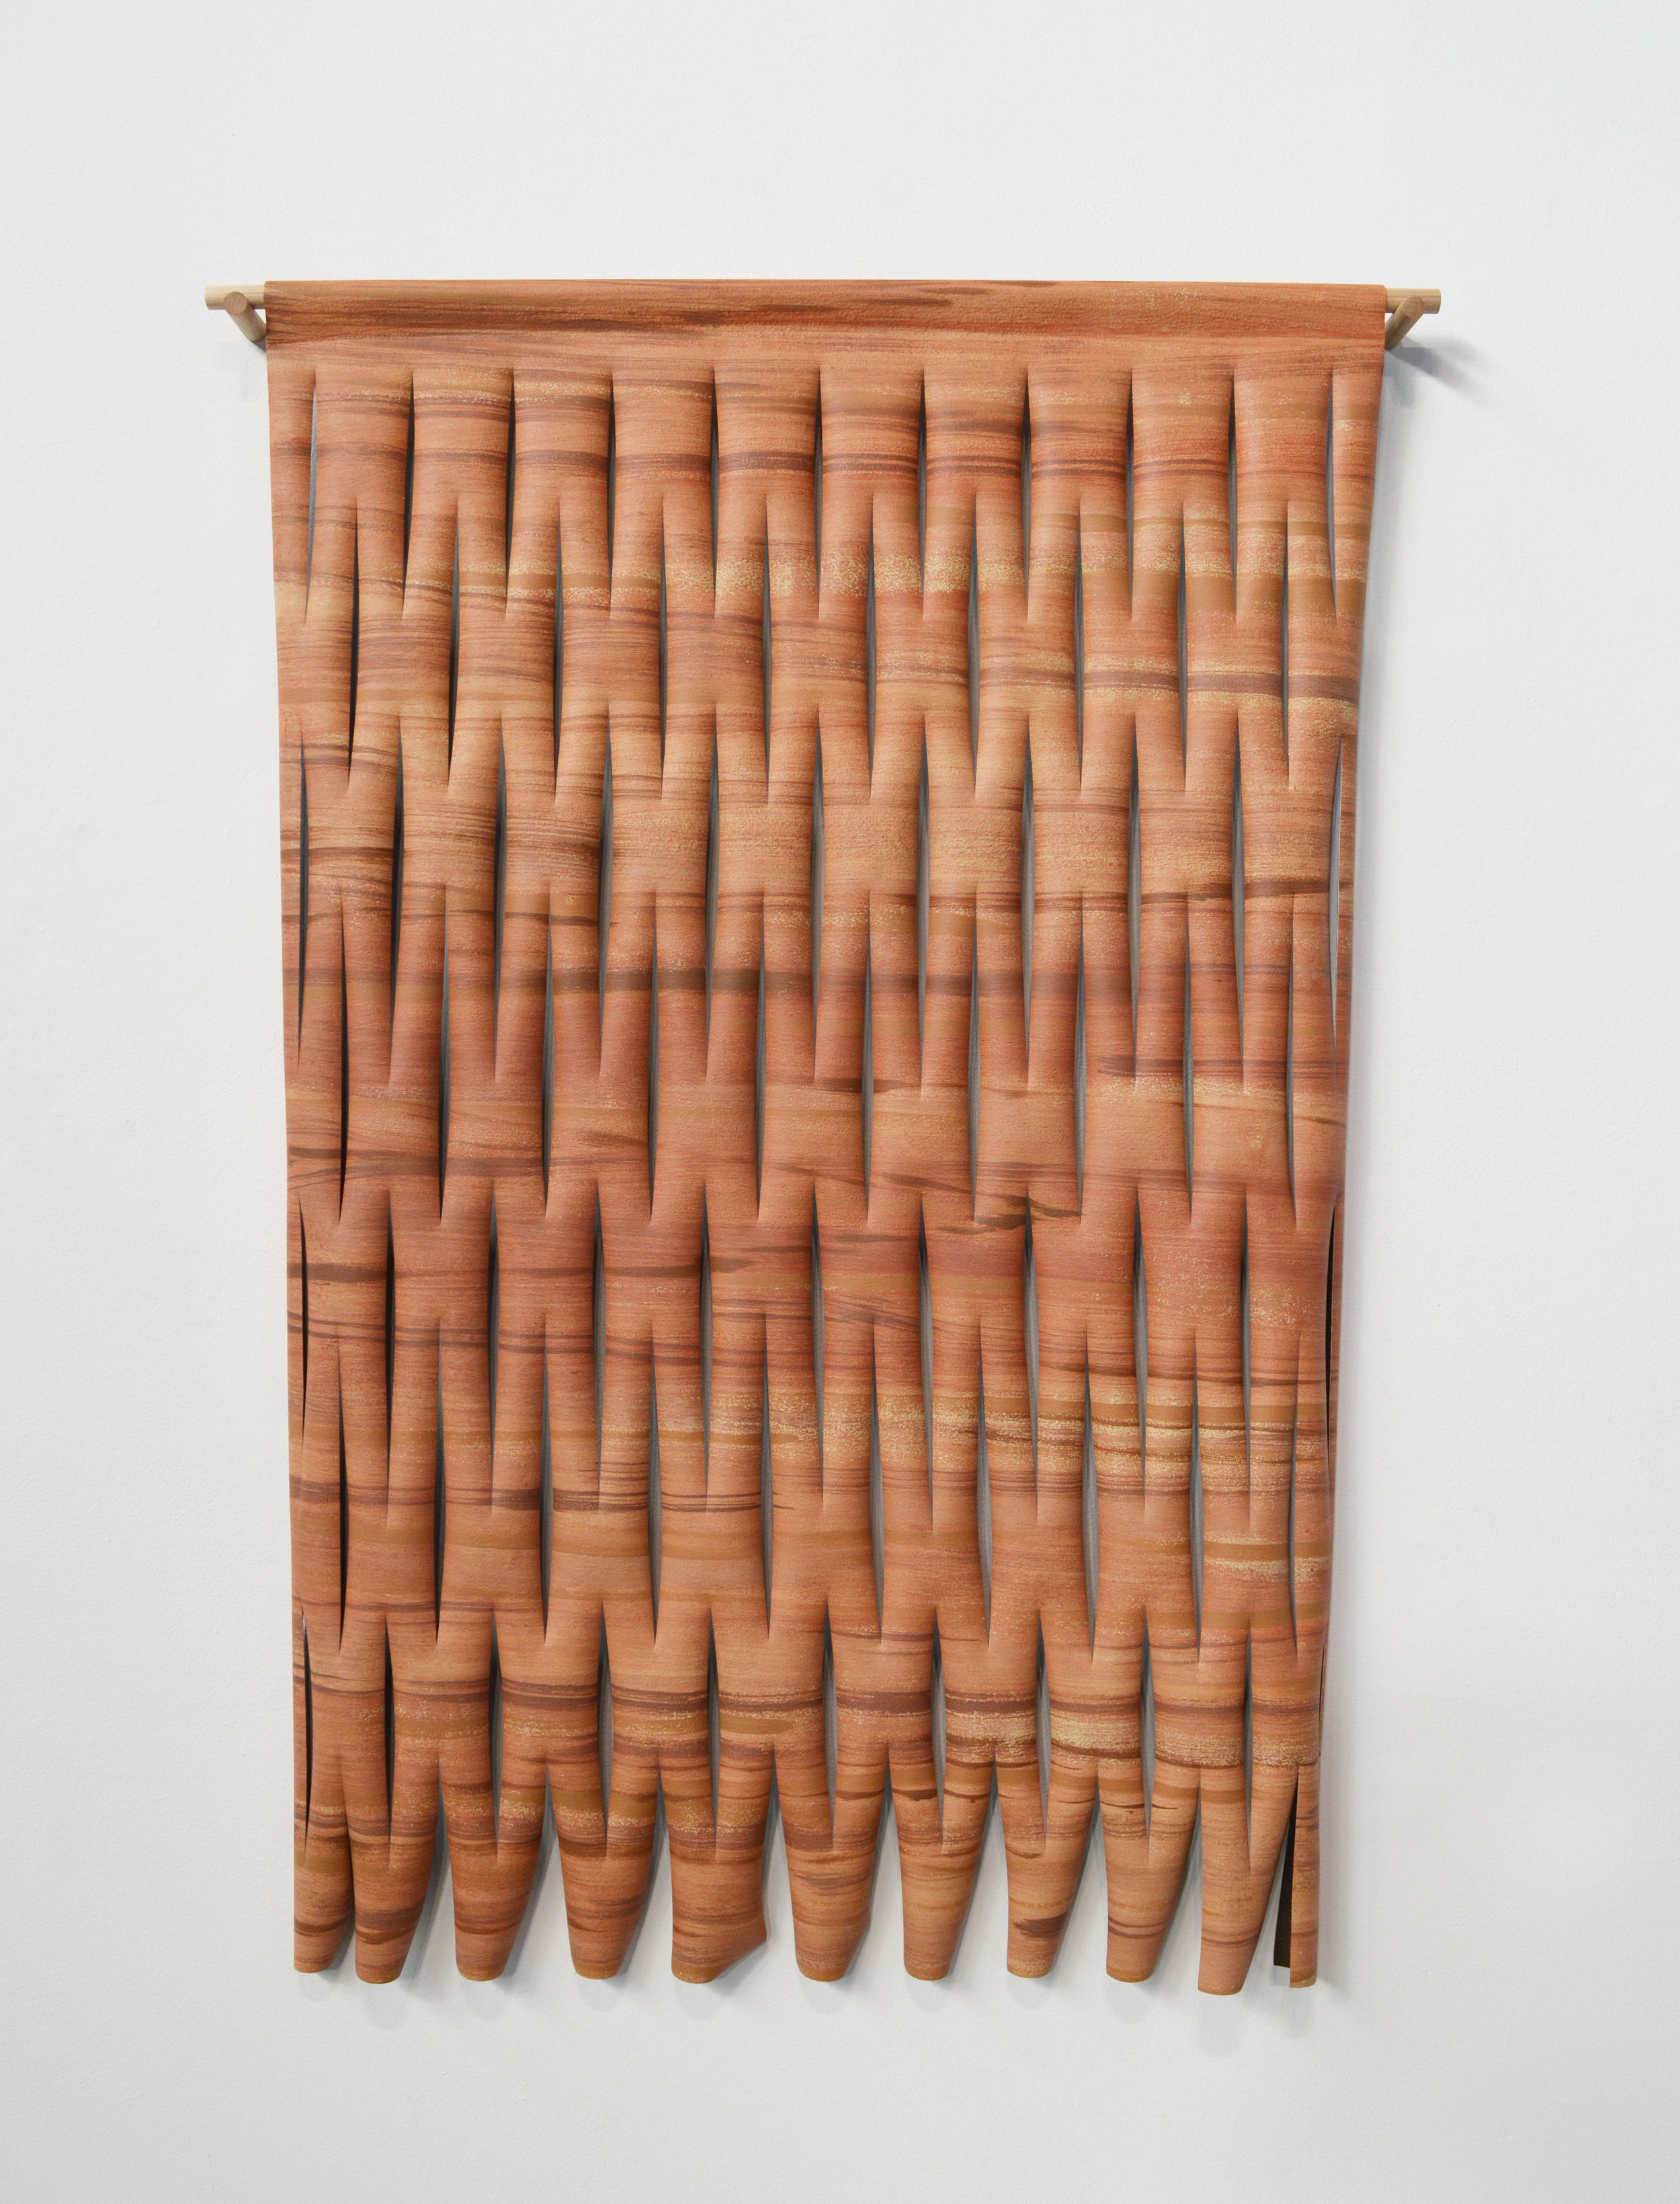 "Untitled, 2016, acrylic on sliced faux leather vinyl, wood dowel, H52"" x W37.5"" x D2.5"". Photo: Aaron Guravich"